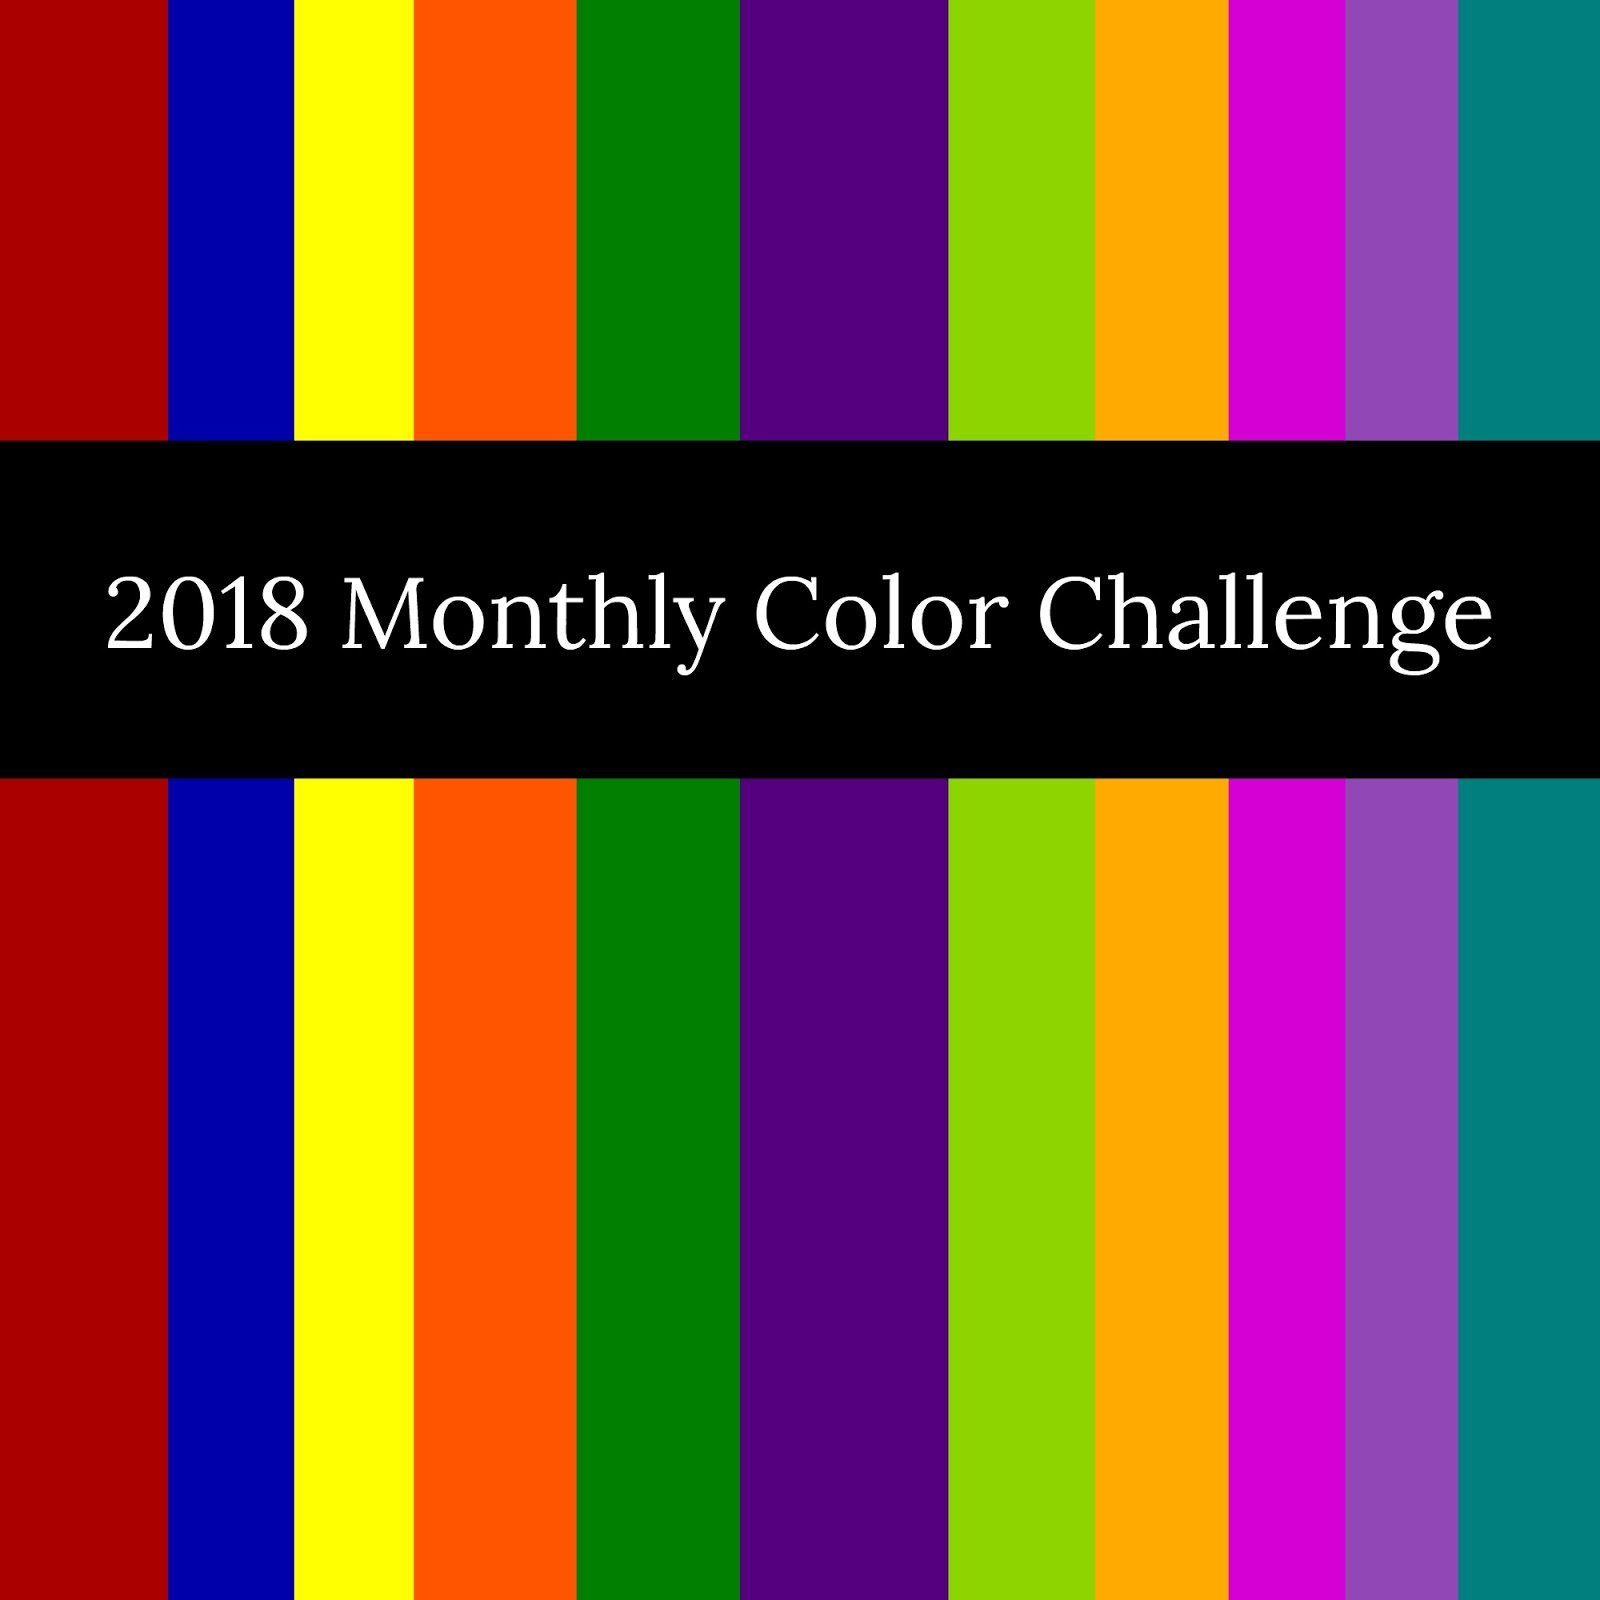 #2018MonthlyColorChallenge